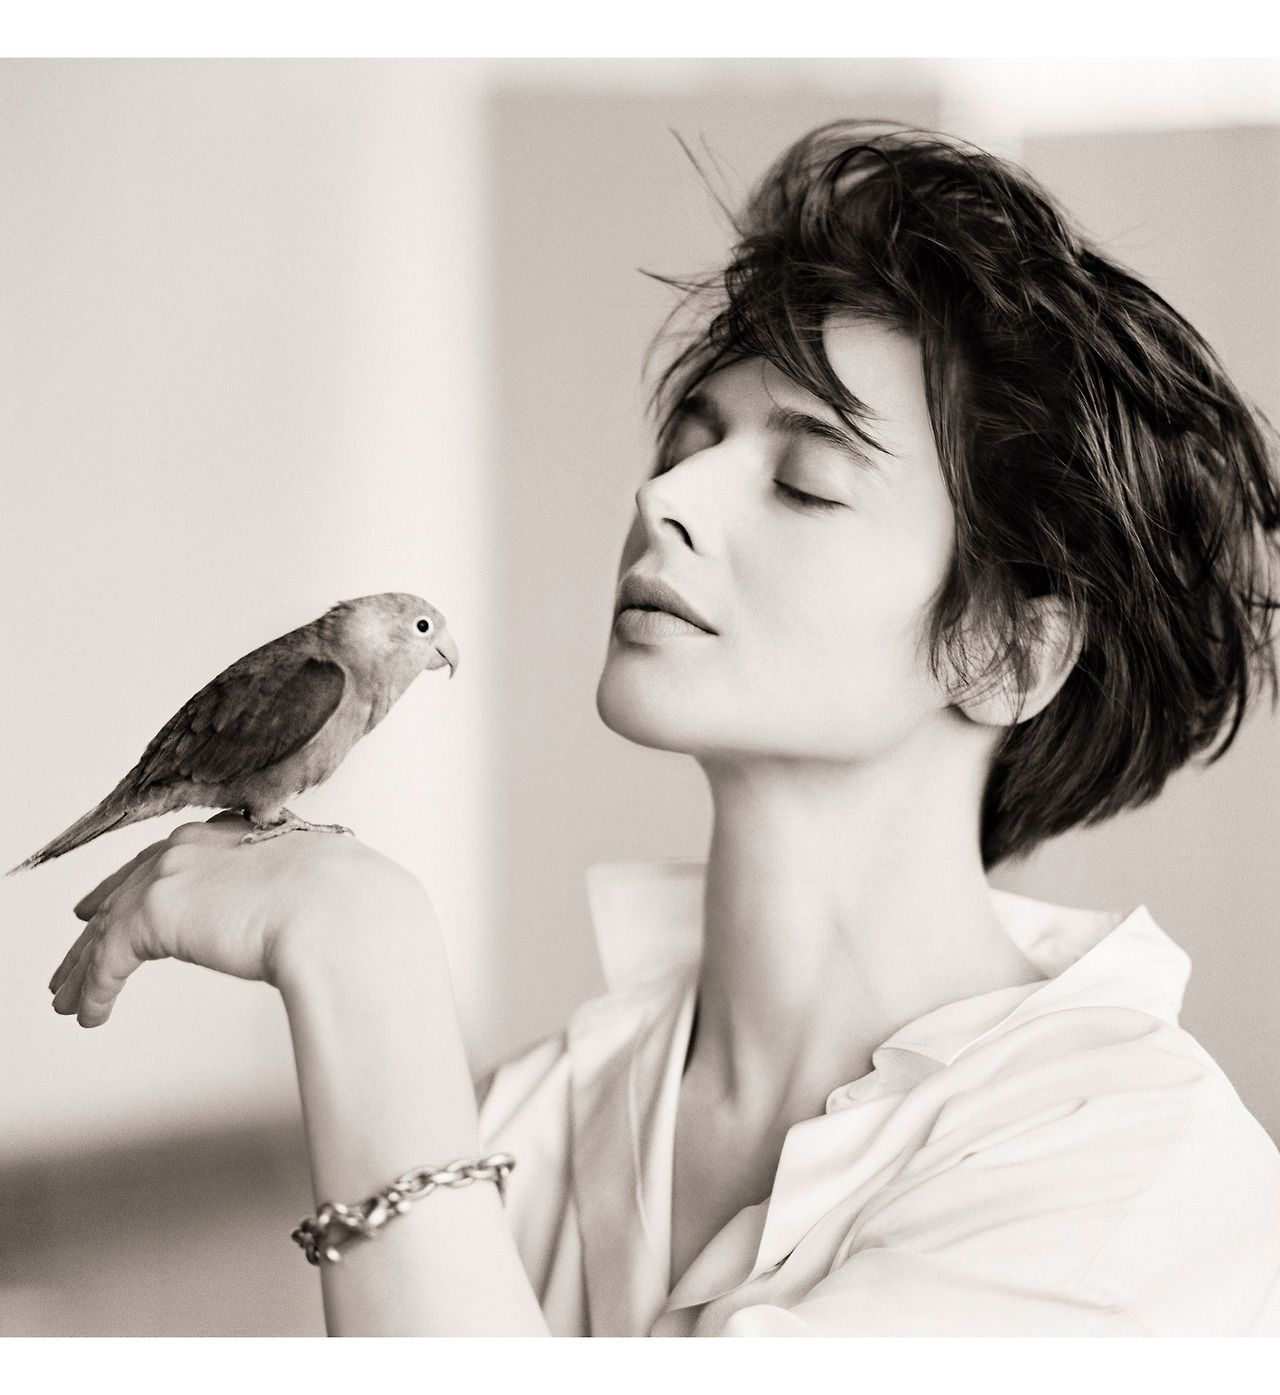 Isabella Rossellini Bird 1988 In Nyc Ph C Matthew Rolston